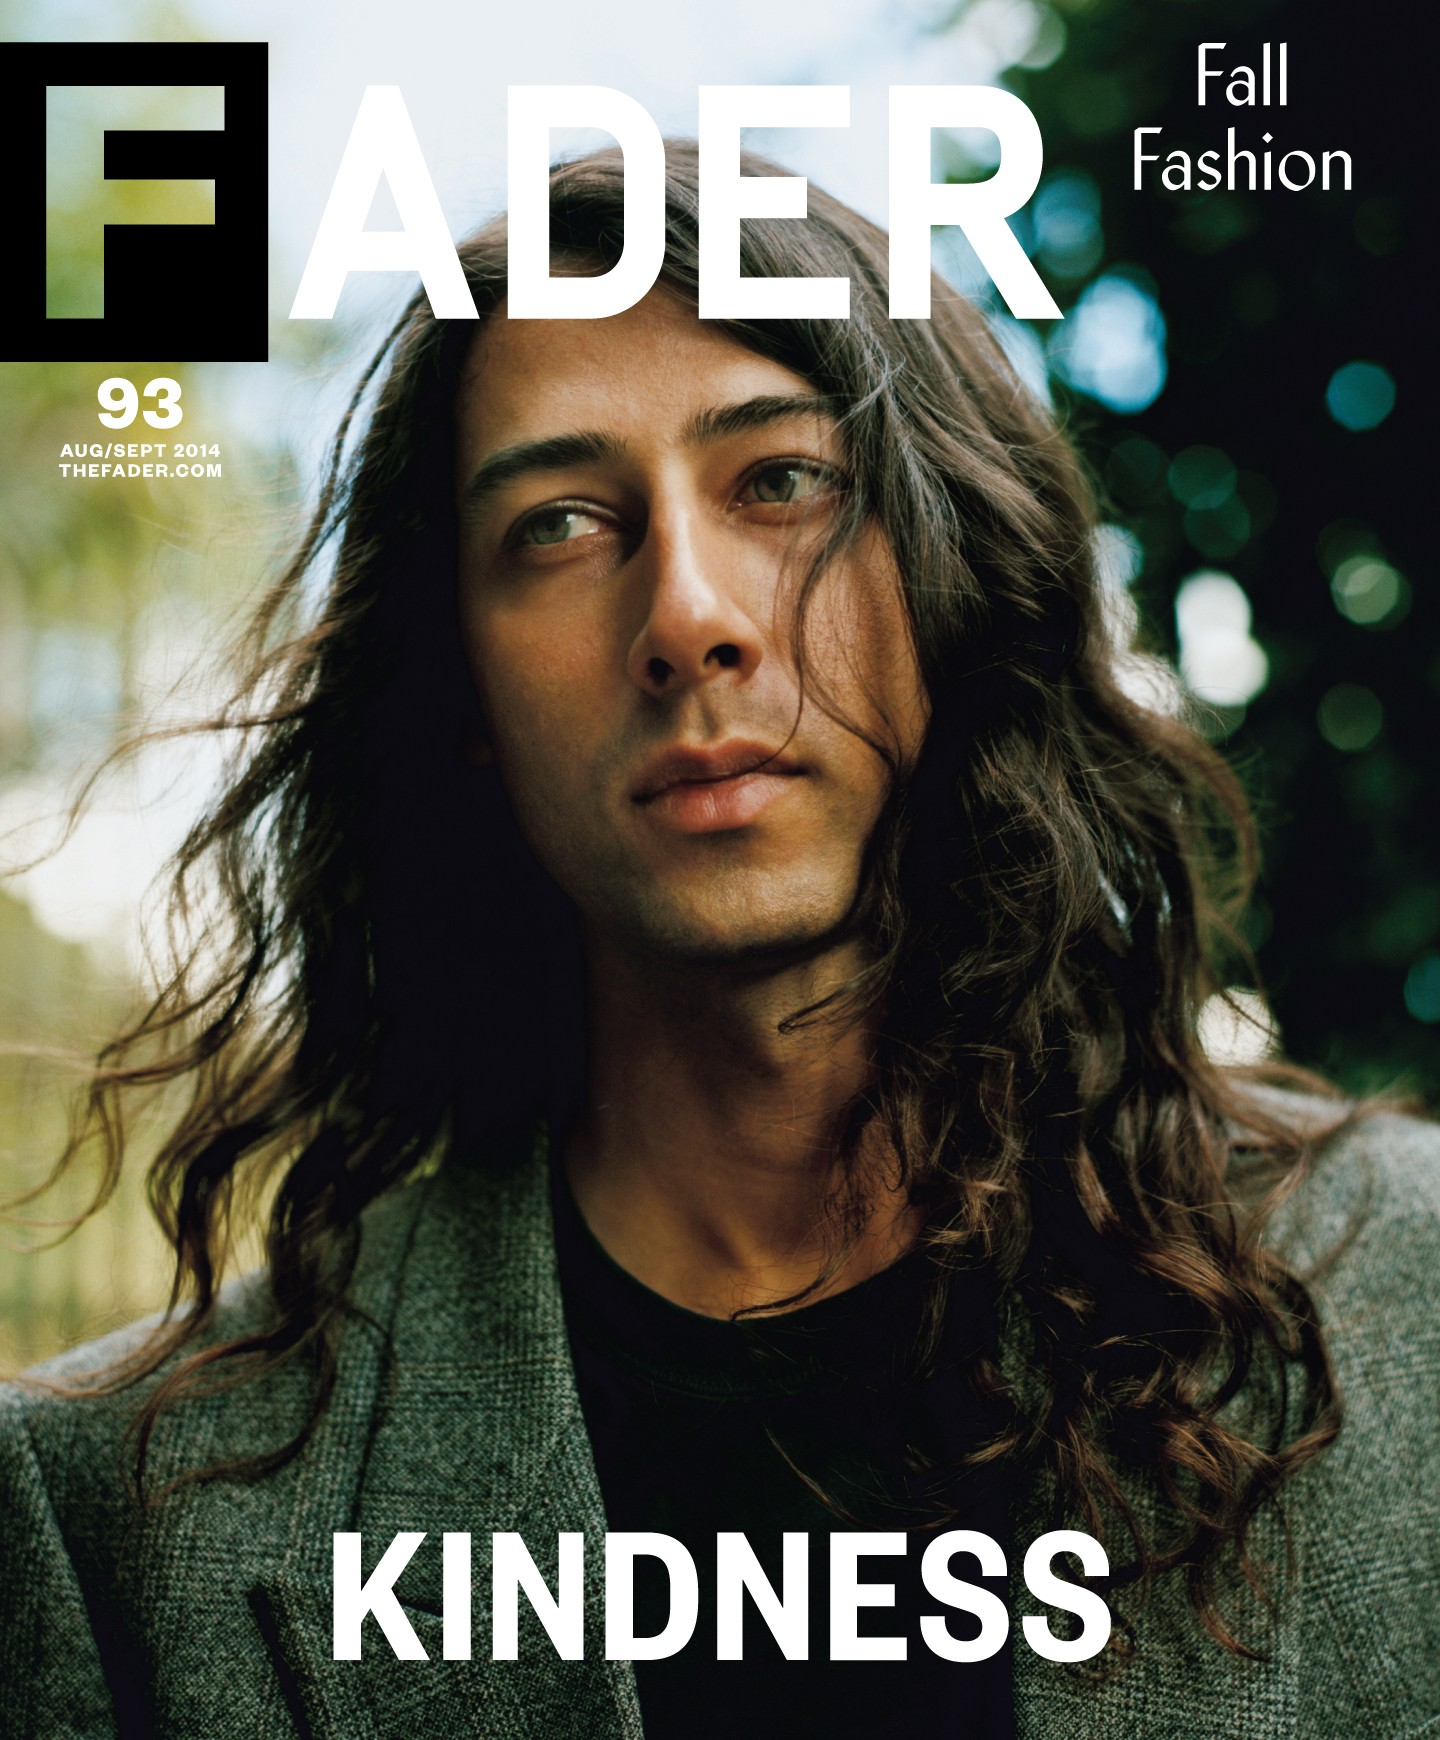 Kindness - The FADER cover